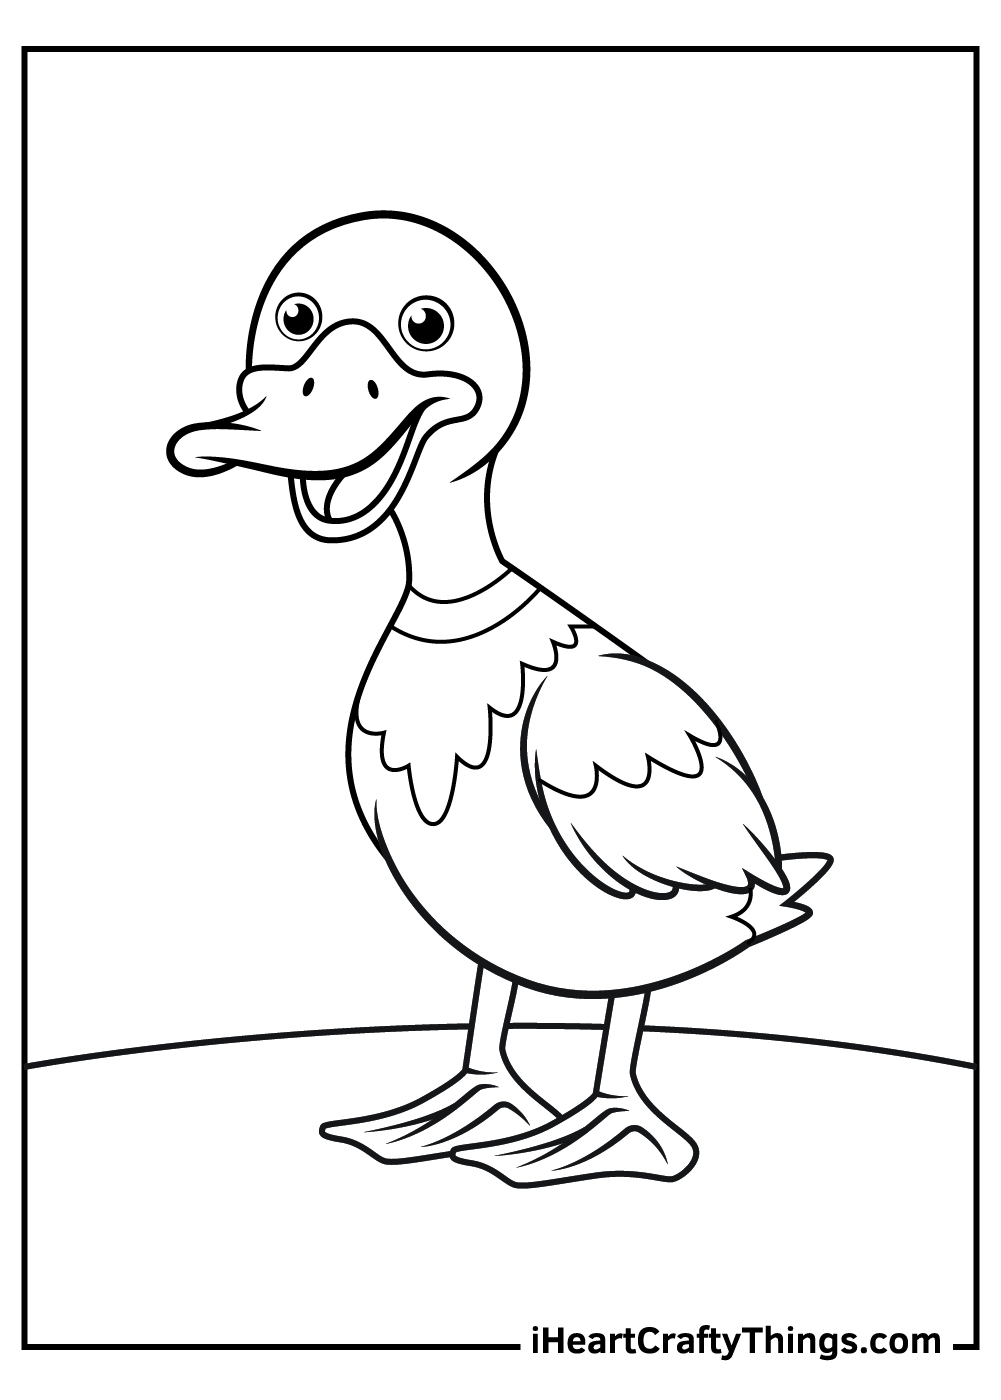 cute duck coloring pages free download